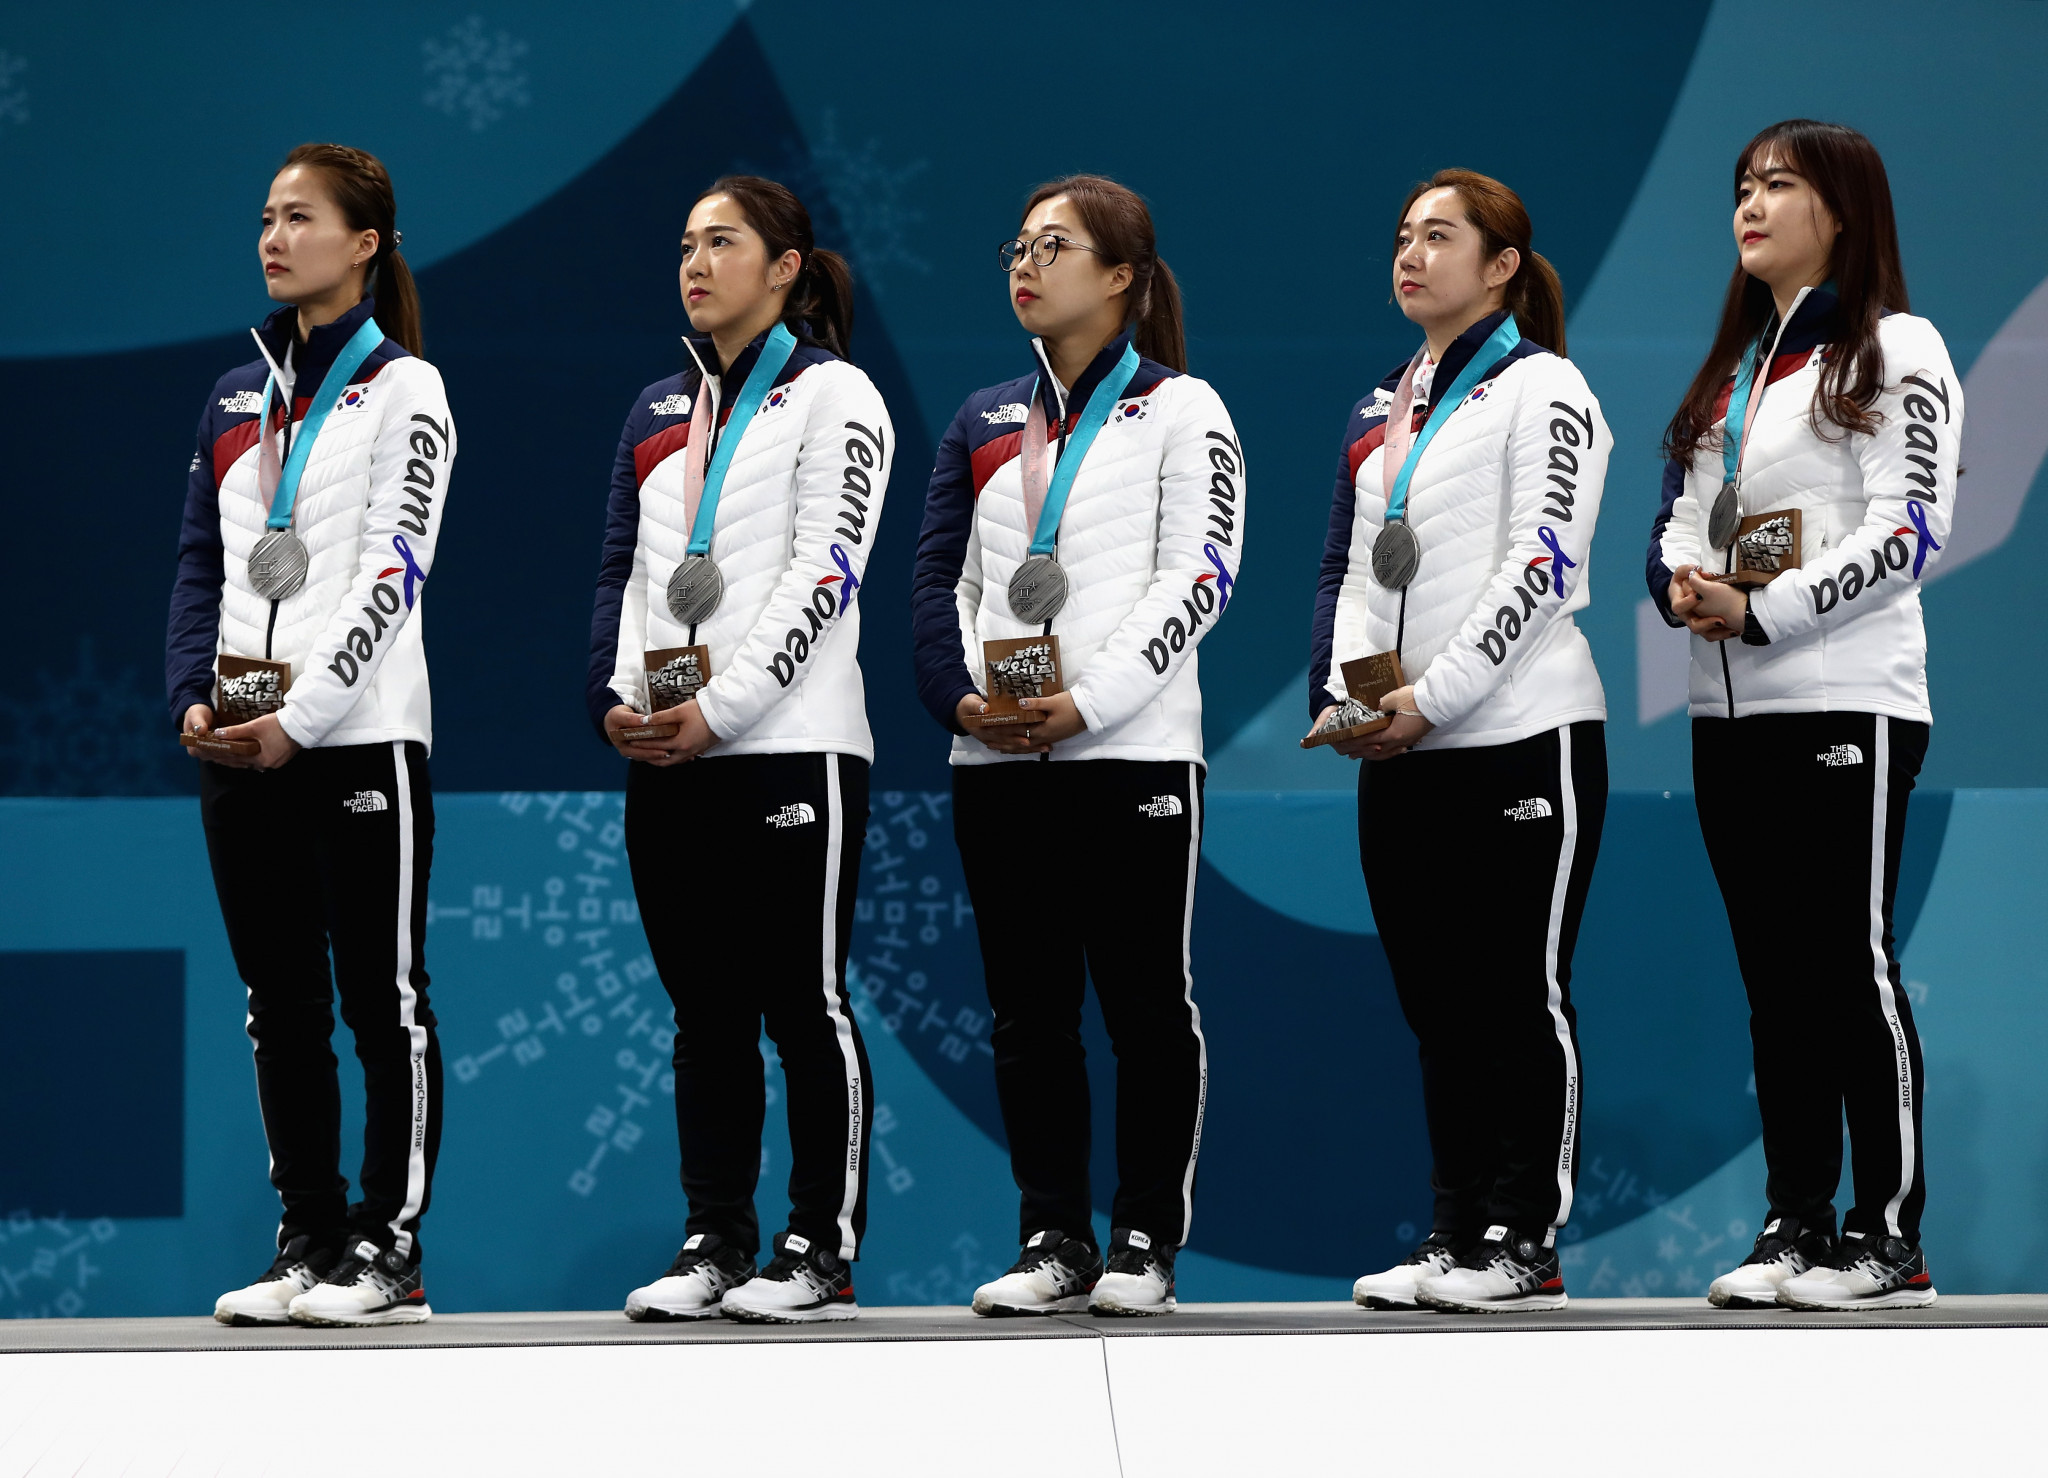 South Korean Olympic curling team given big cash reward for Pyeongchang 2018 success by retail giant